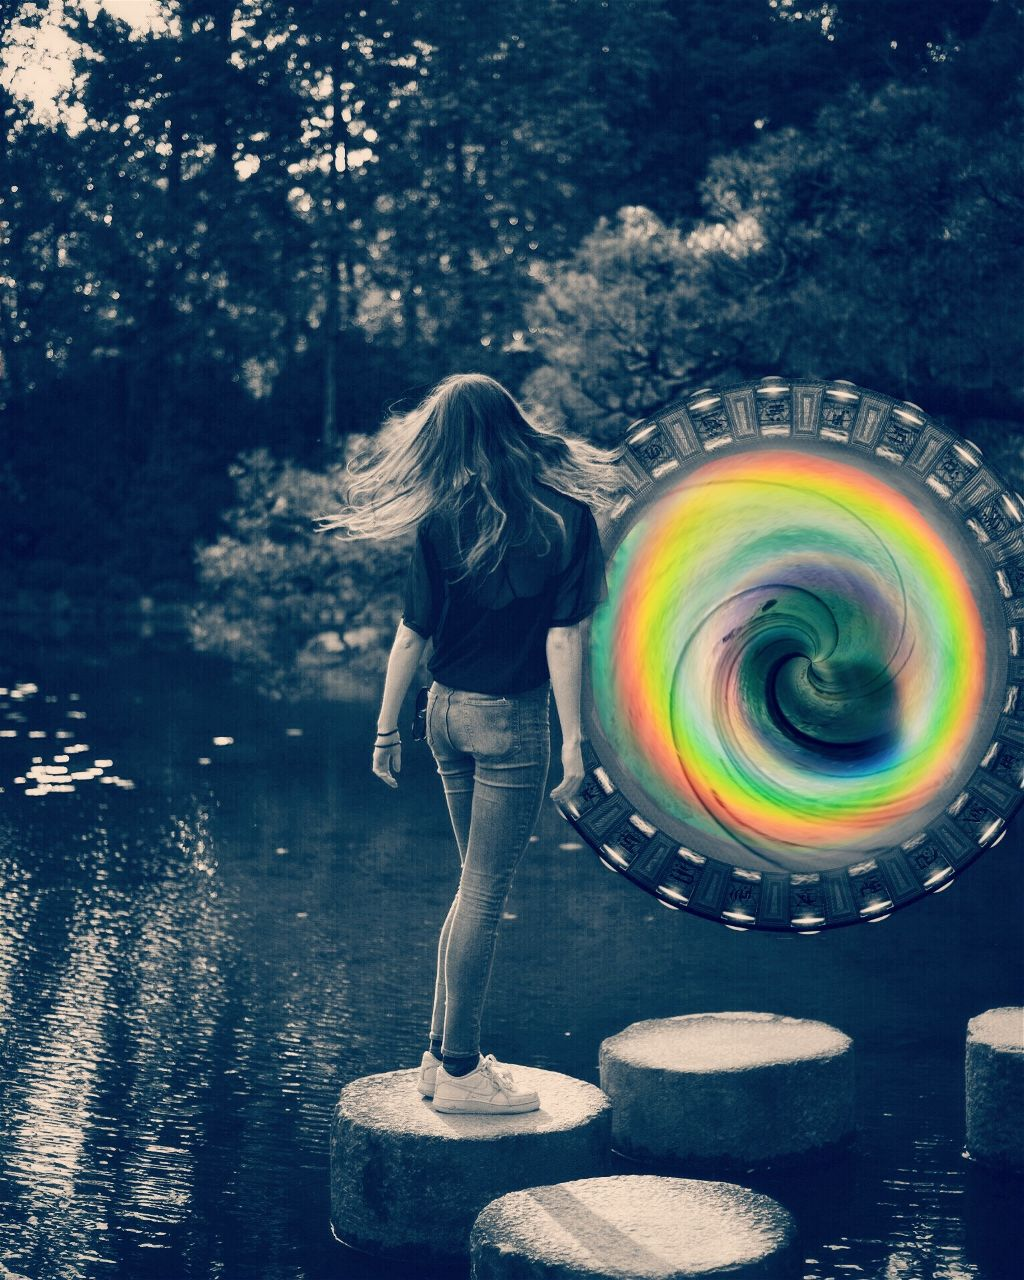 I'm actually pretty proud of this!😄 #girl #portal #newworld #rainbow #differentworld #steppingstones #coolpic #stickers